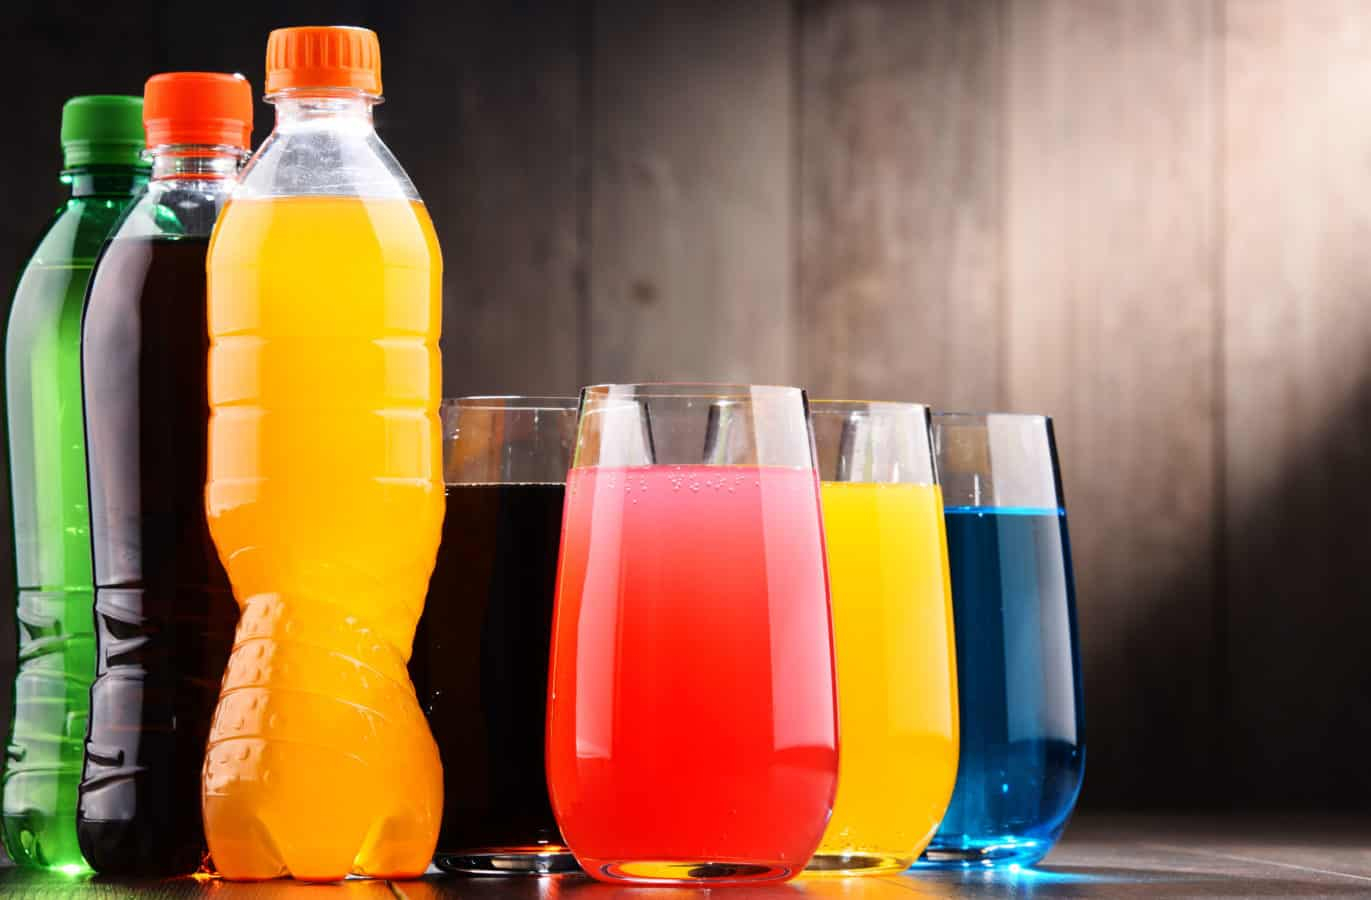 Corn syrup, Dextrose, Fructose, Barley Malt…What's In A Name?